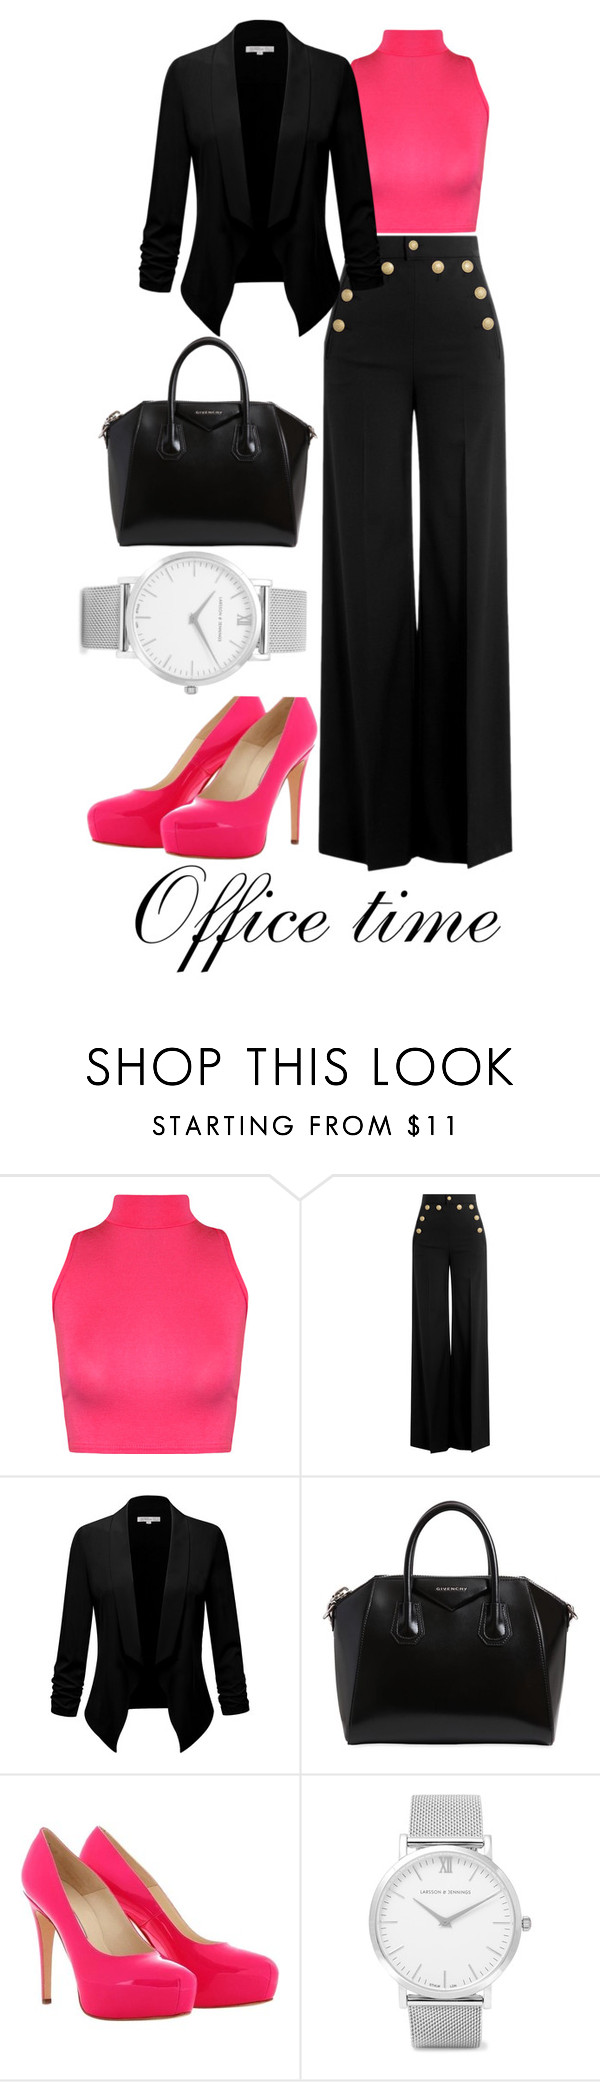 """""""Office time"""" by kacenka-1 ❤ liked on Polyvore featuring WearAll, RED Valentino, Givenchy, Brian Atwood and Larsson & Jennings"""